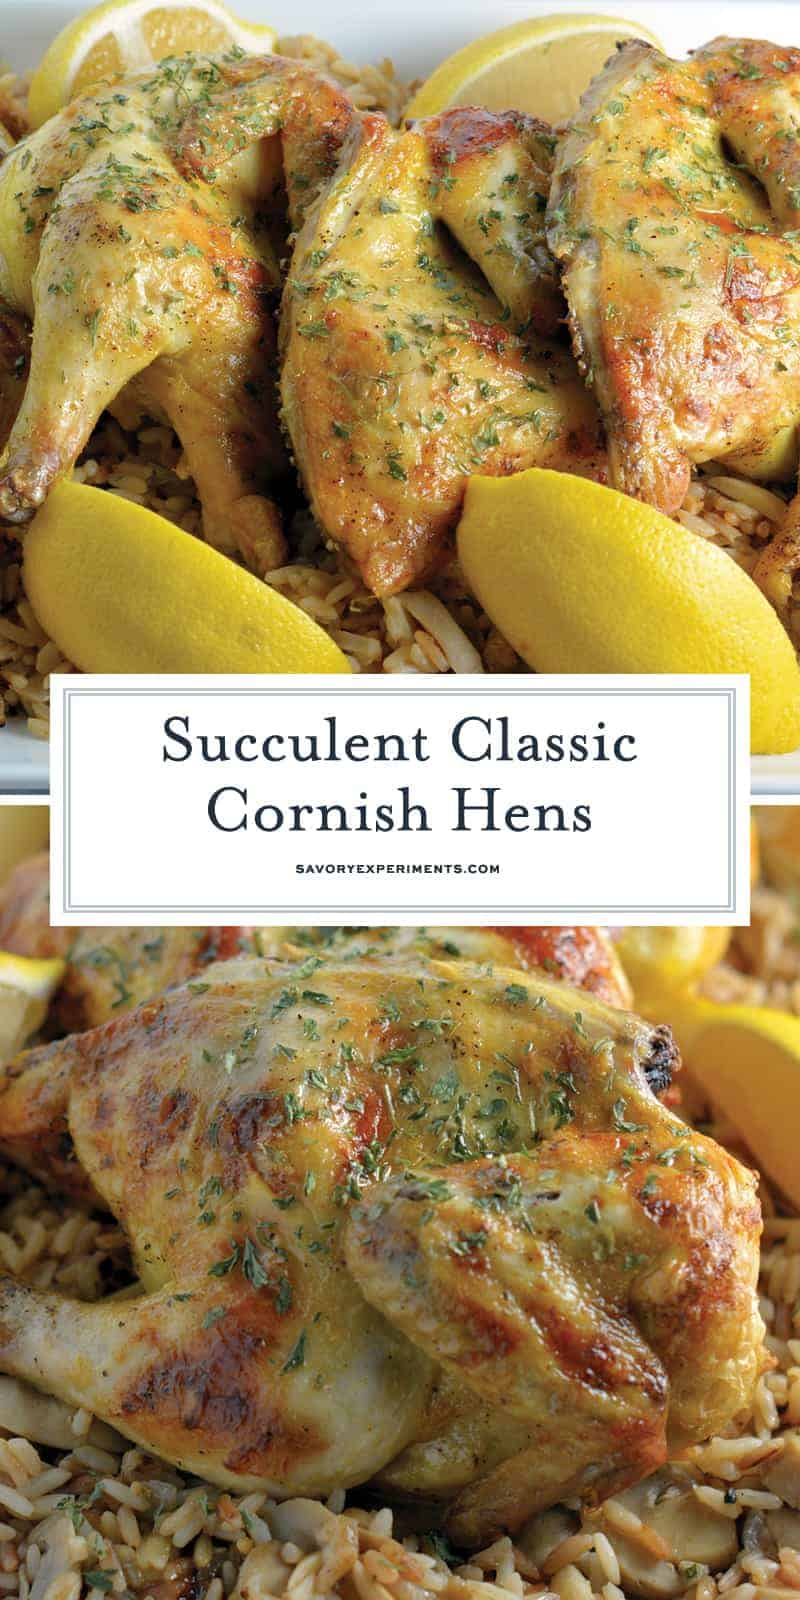 Classic Cornish Hens are perfect for holiday parties! Basted with a zesty butter sauce and ready in under 1 hour. Your family will LOVE them! #cornishhenrecipes www.savoryexperiments.com